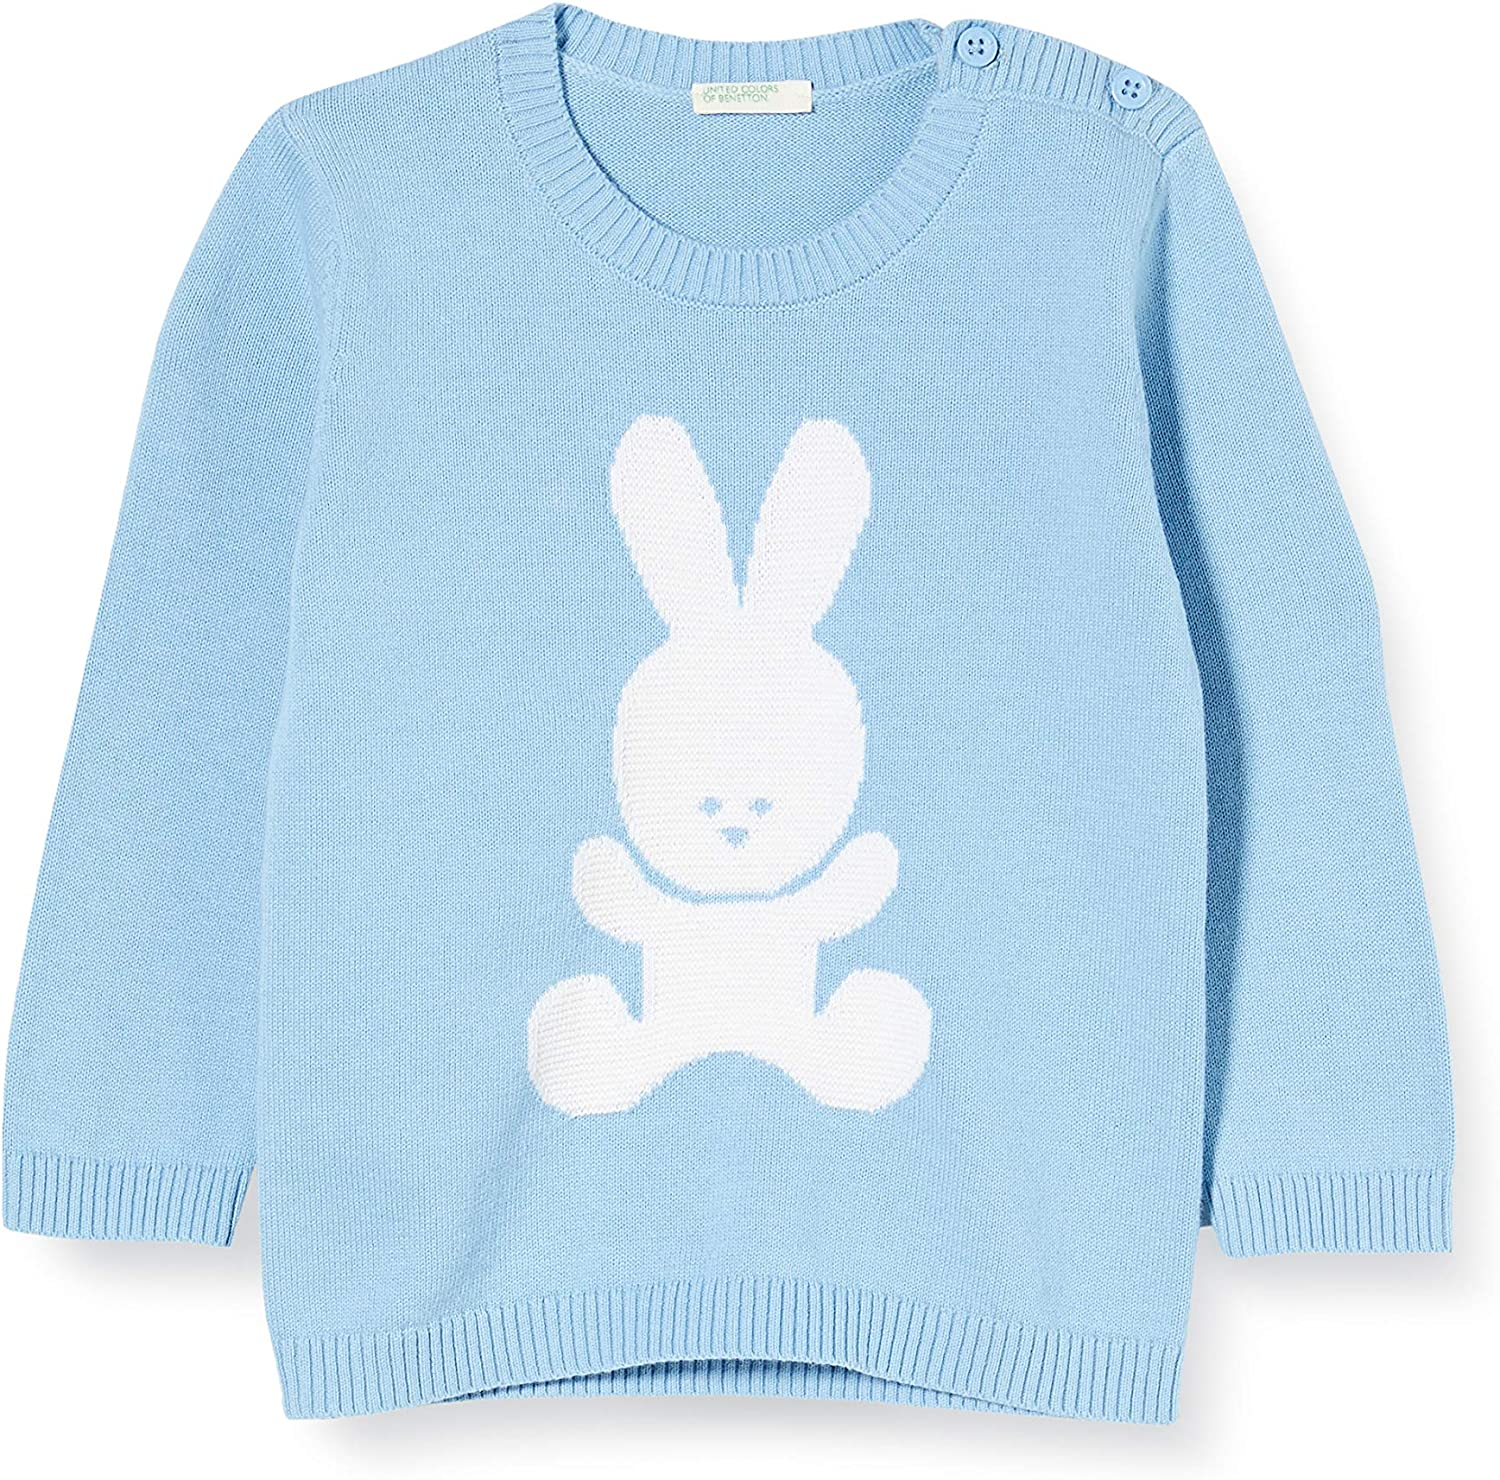 United Colors of Benetton Baby Girls Maglia G//C M//L Jumper